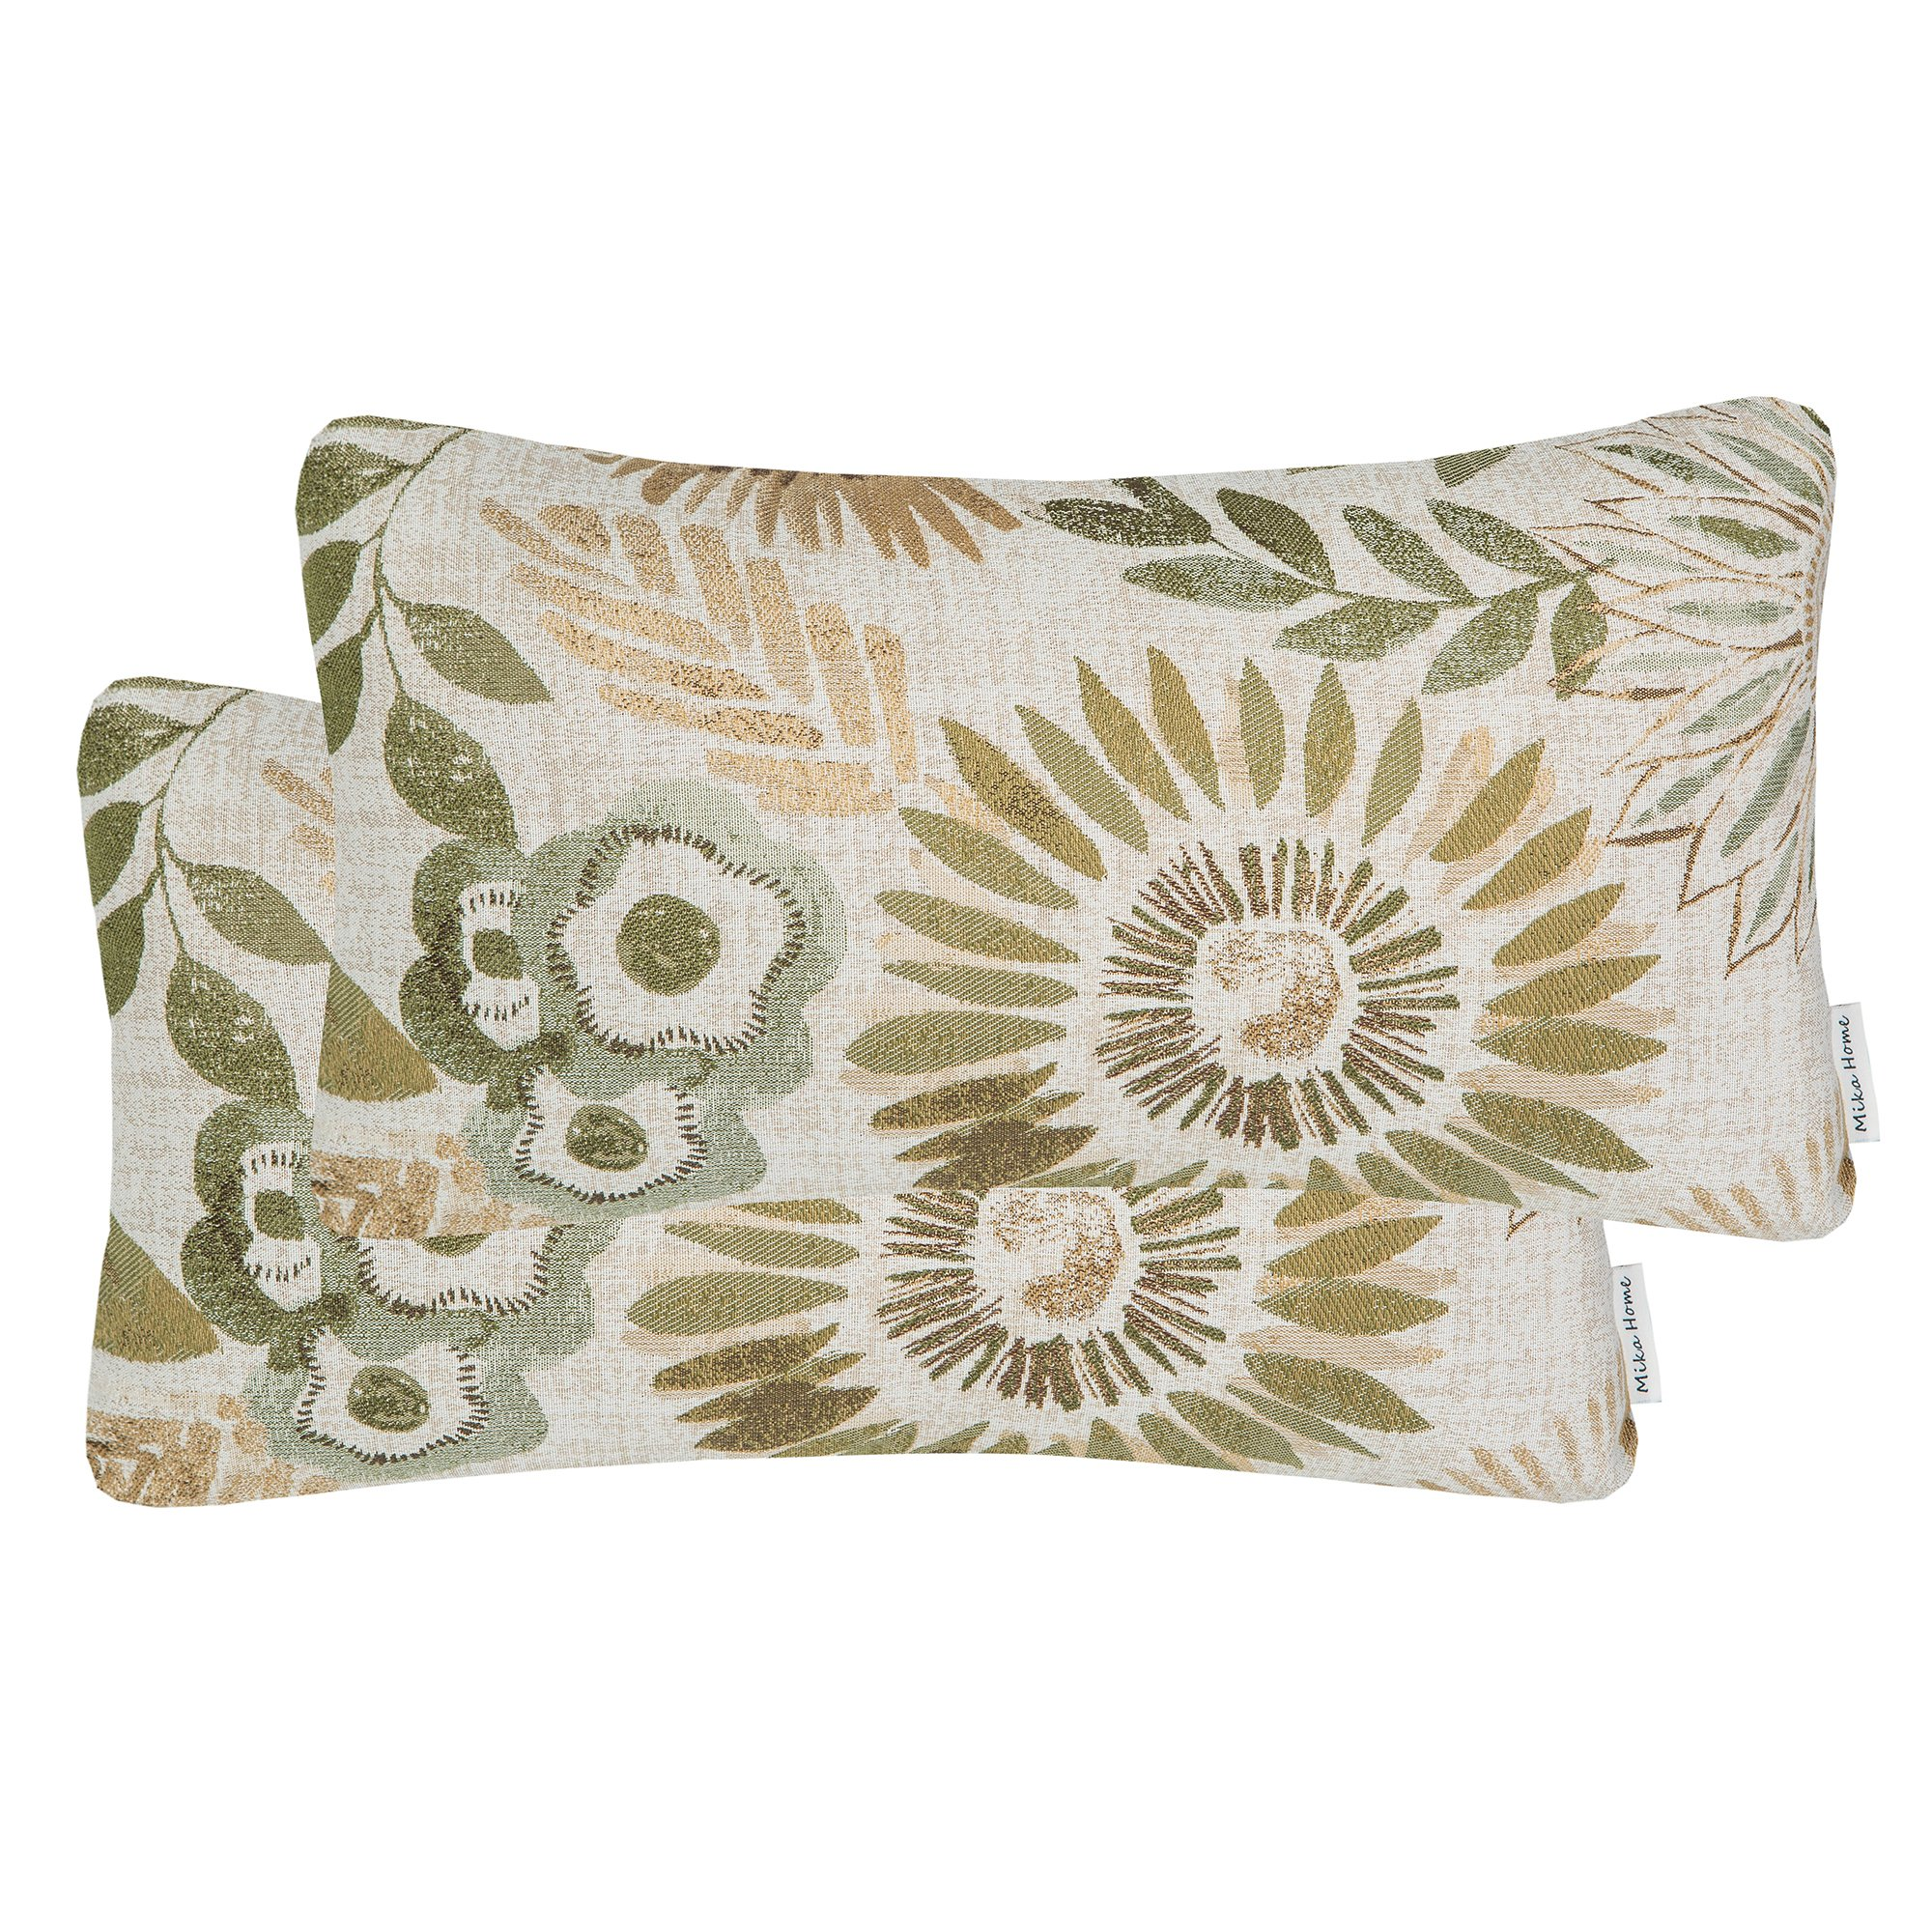 Mika Home Pack of 2 Decorative Oblong Rectangular Throw Pillow Cover Cushion Cases for Chair,Sunflower Pattern,12x20 Inches, Green Cream